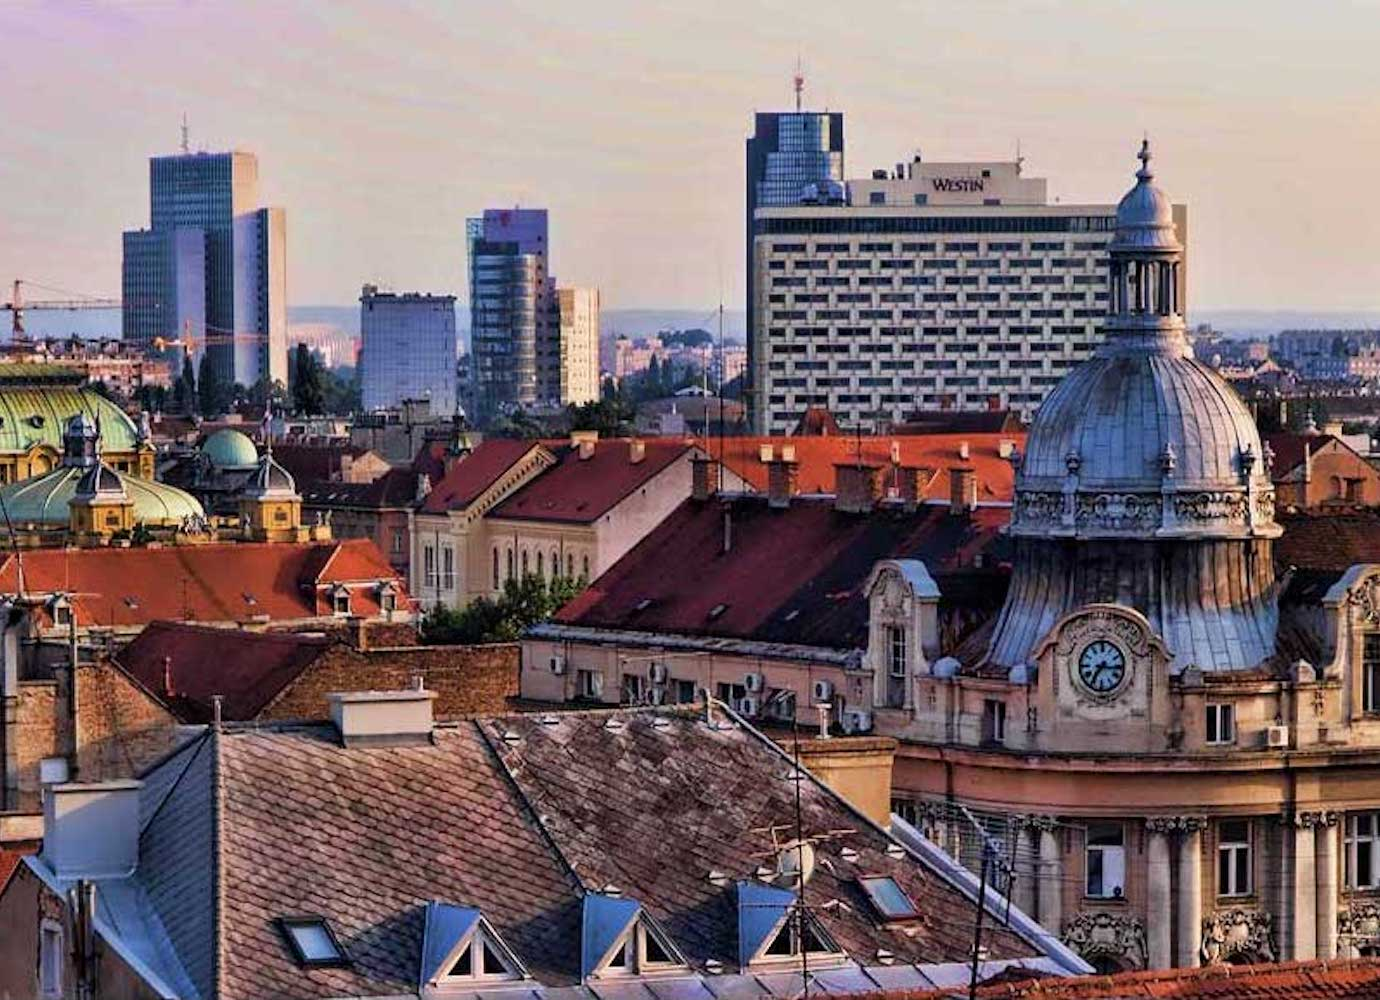 The Mayor of Zagreb wants to build Croatia's own Manhattan — and locals are taking to the streets to stop him